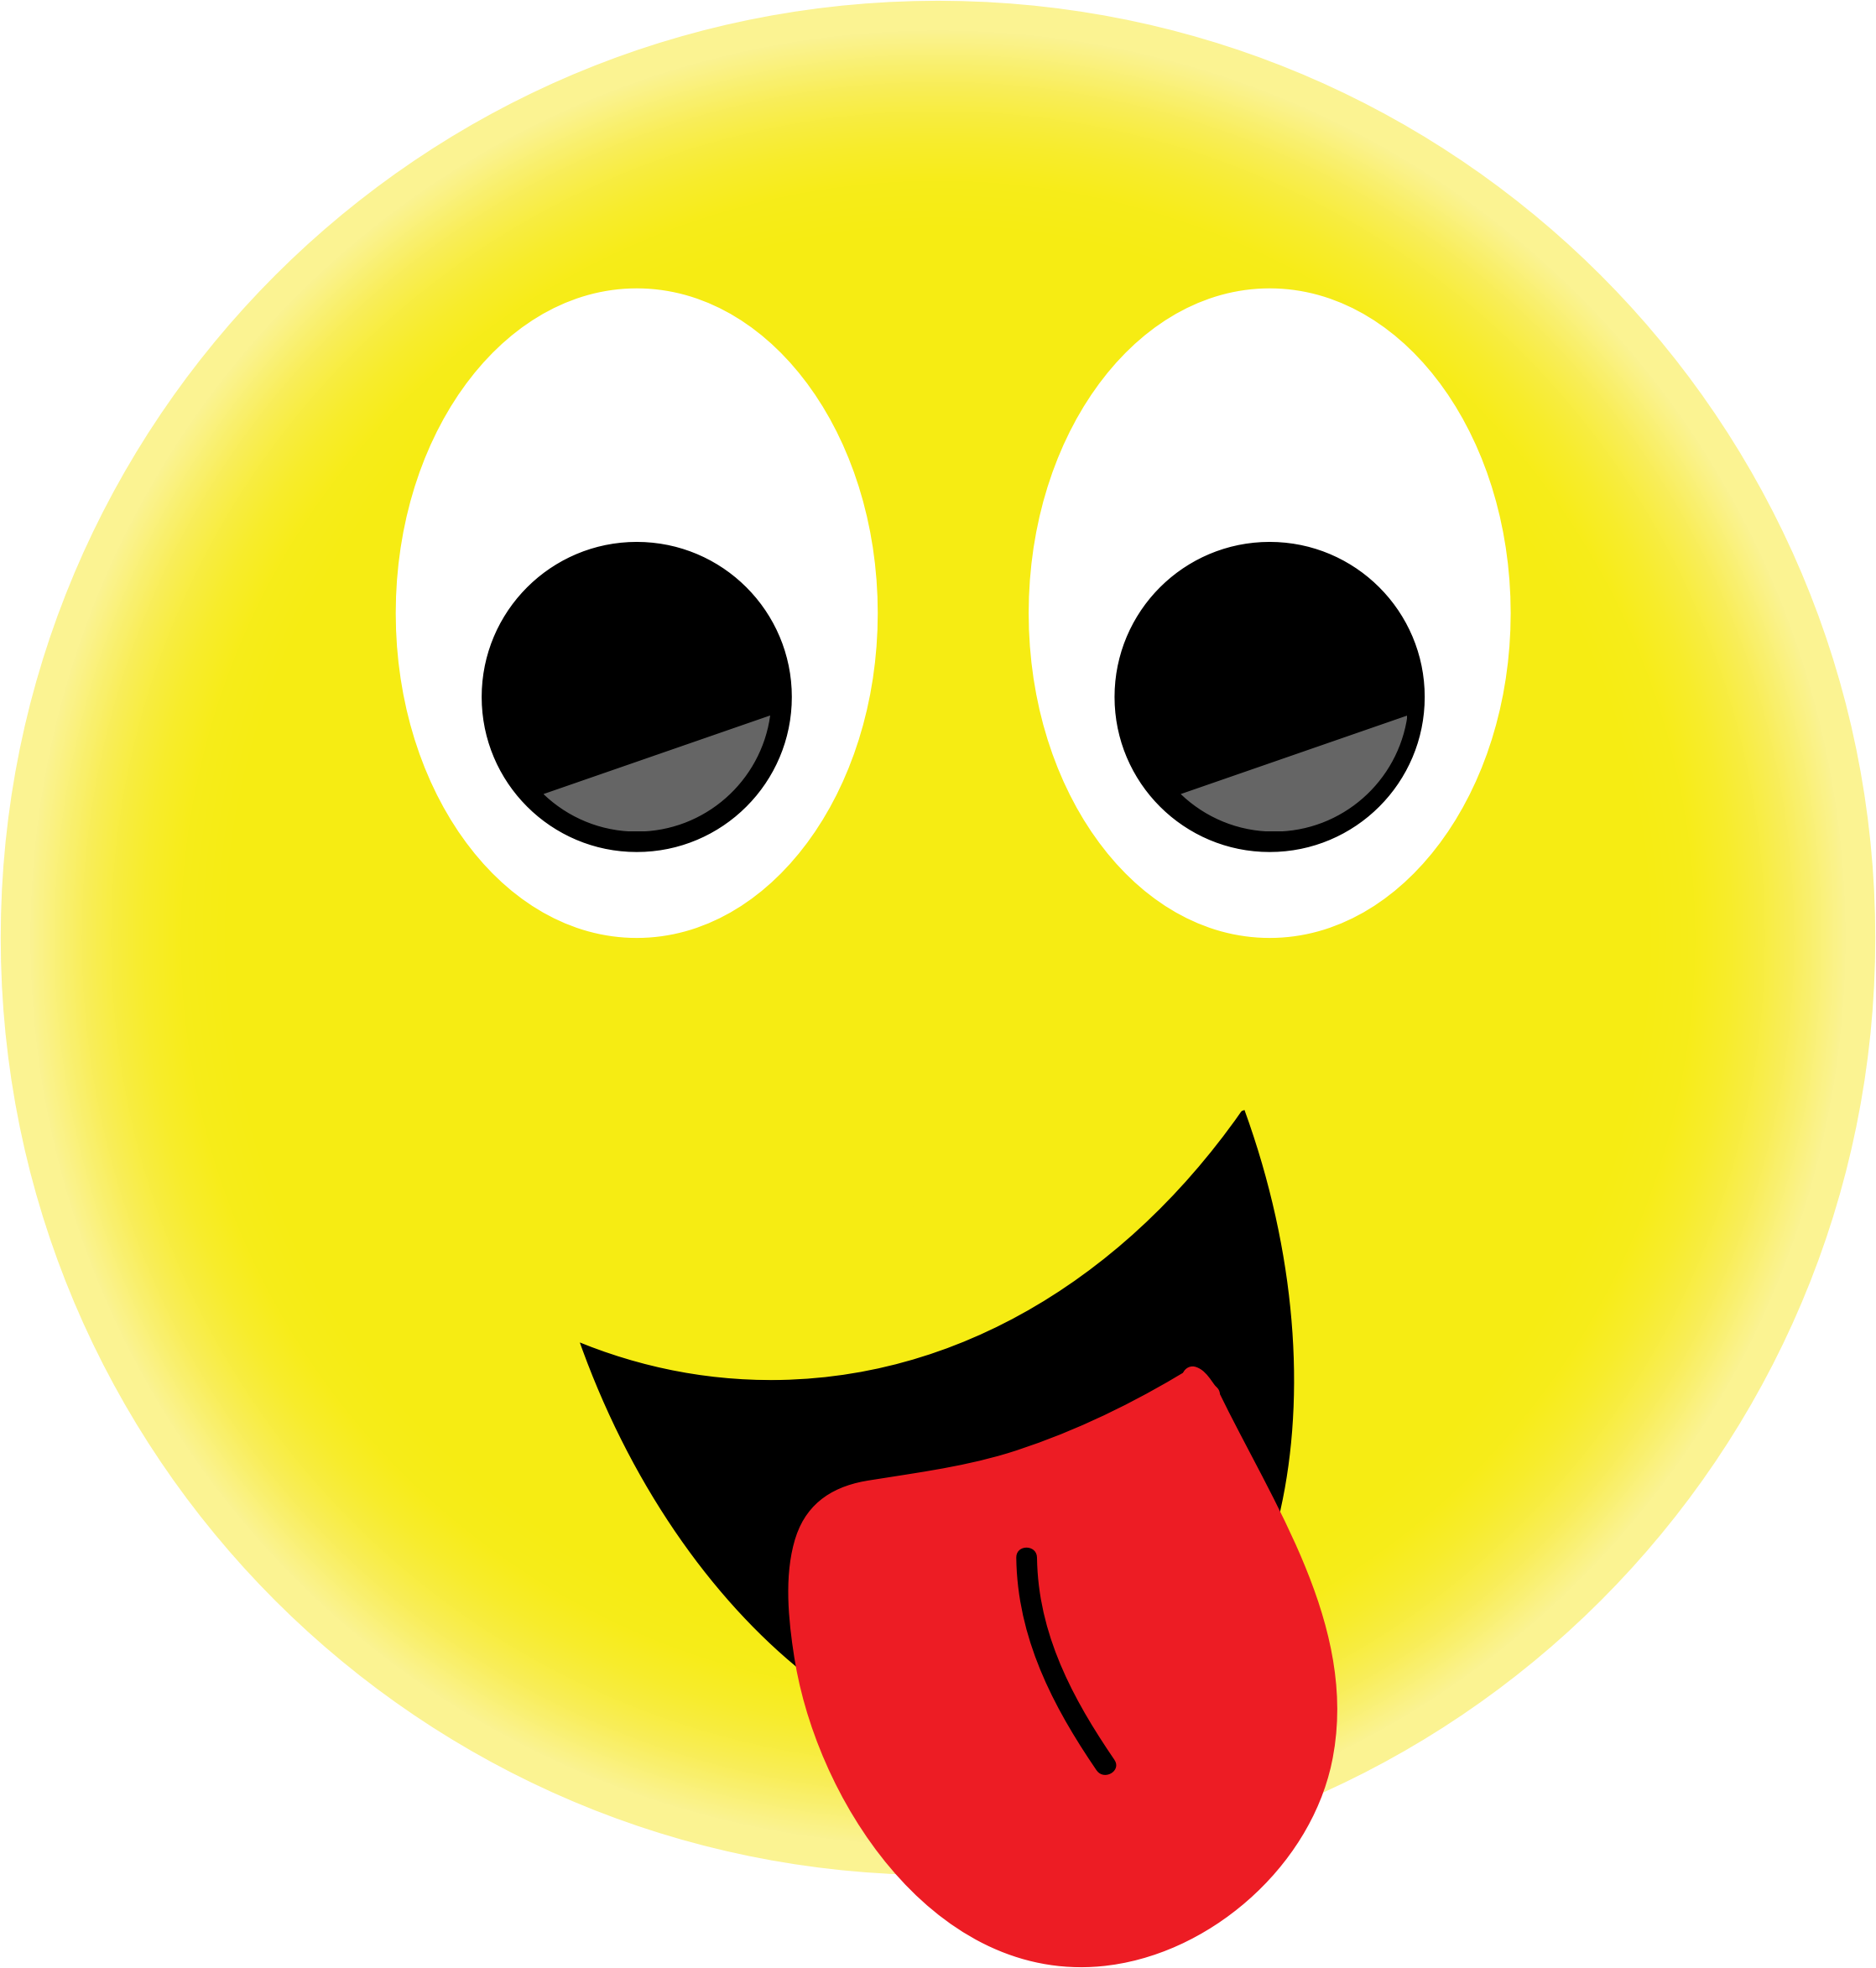 Tongue out emoji png. Smiley face with transparent